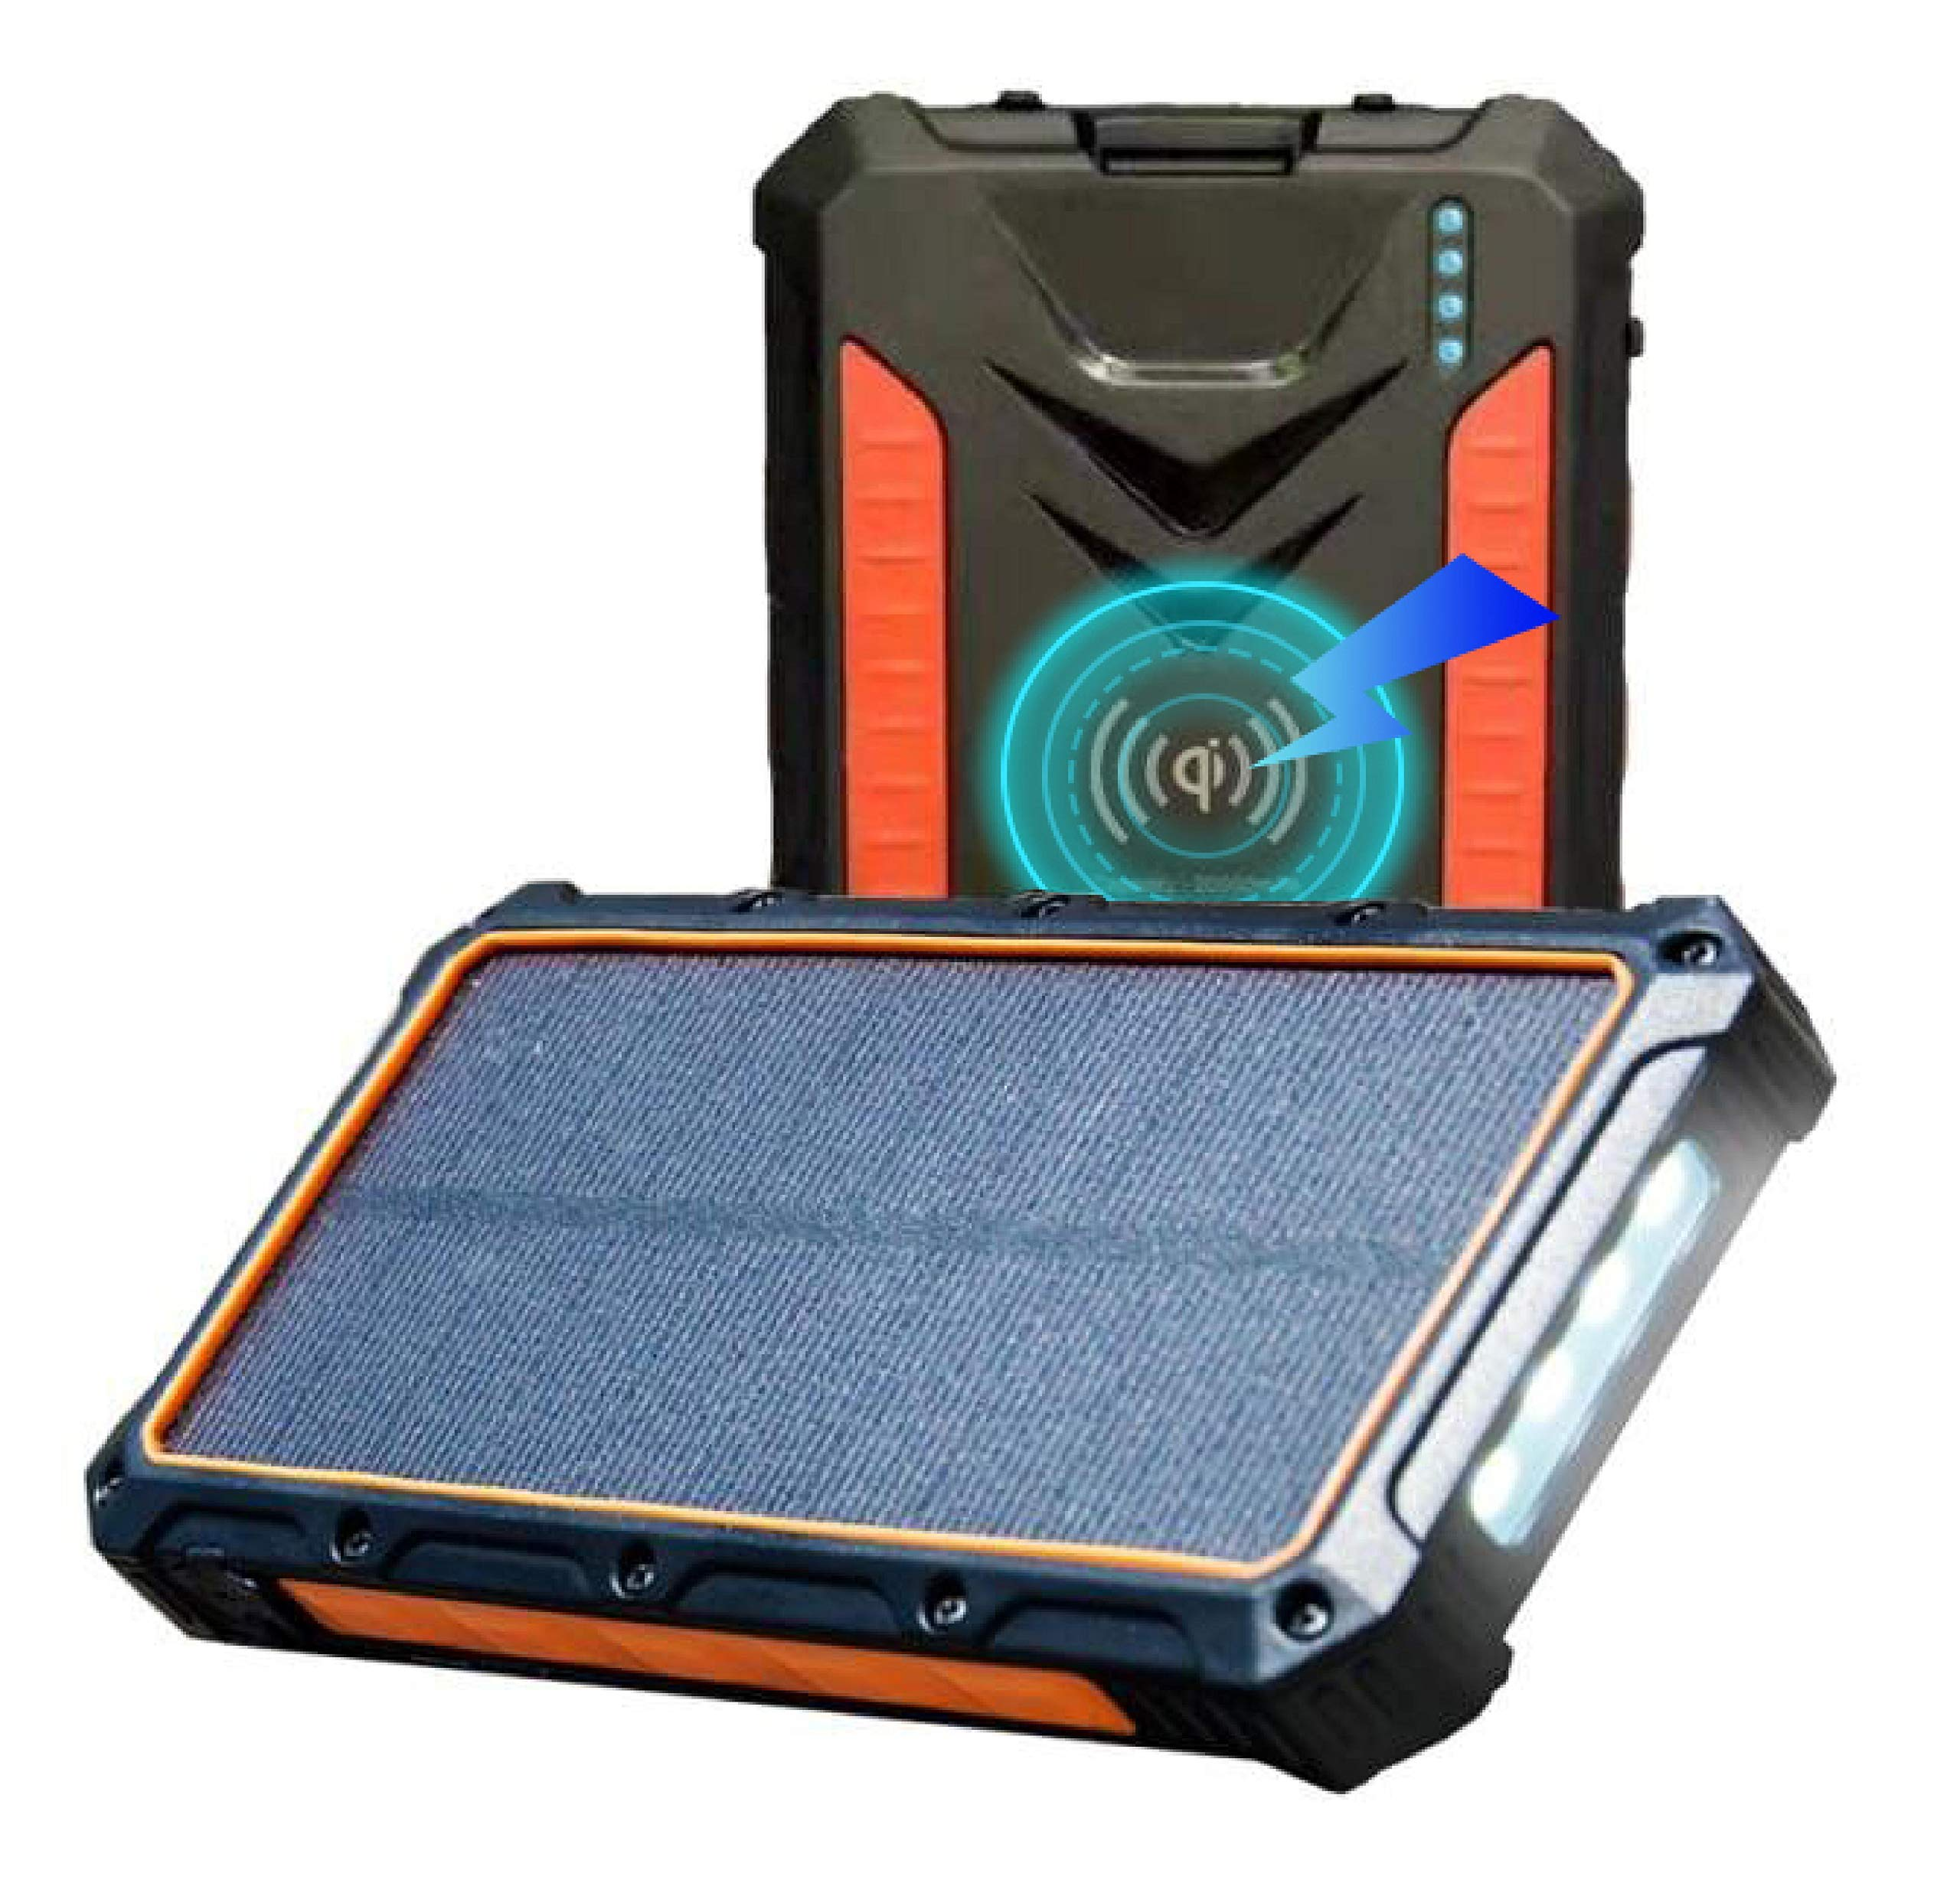 Solar Power Bank, Qi Wireless Portable Charger, Real 16,000mAh External Battery Pack , 4 in 1, Dual usb output + Type C output + Wireless Charger, With Powerful LED Light (Waterproof, Shockproof) by Roltex (Image #1)